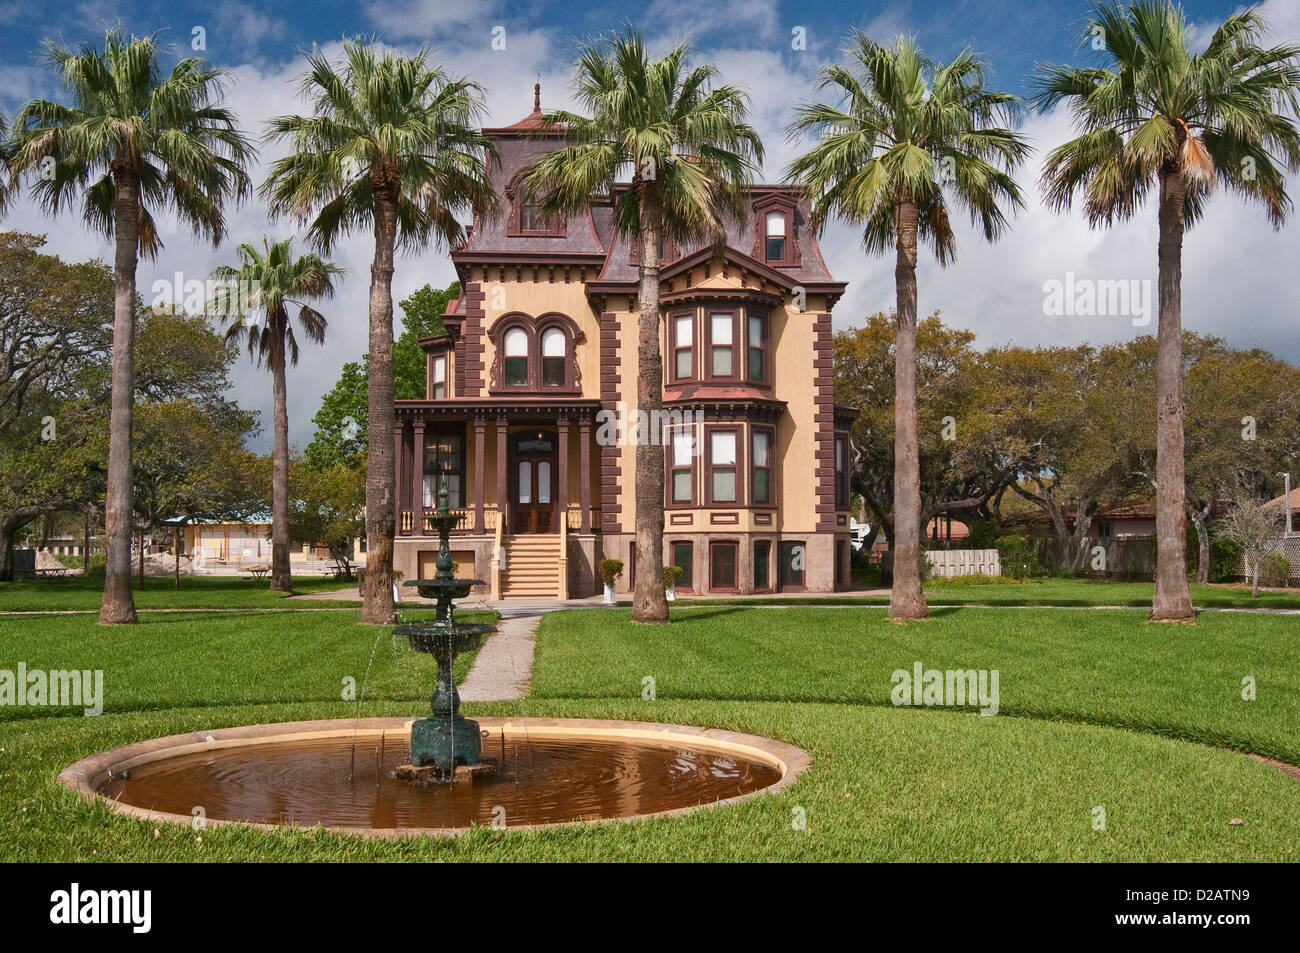 Fulton Mansion, French second empire style (1877), State Historic Site, Gulf Coast, Rockport, Texas, USA Stock Photo